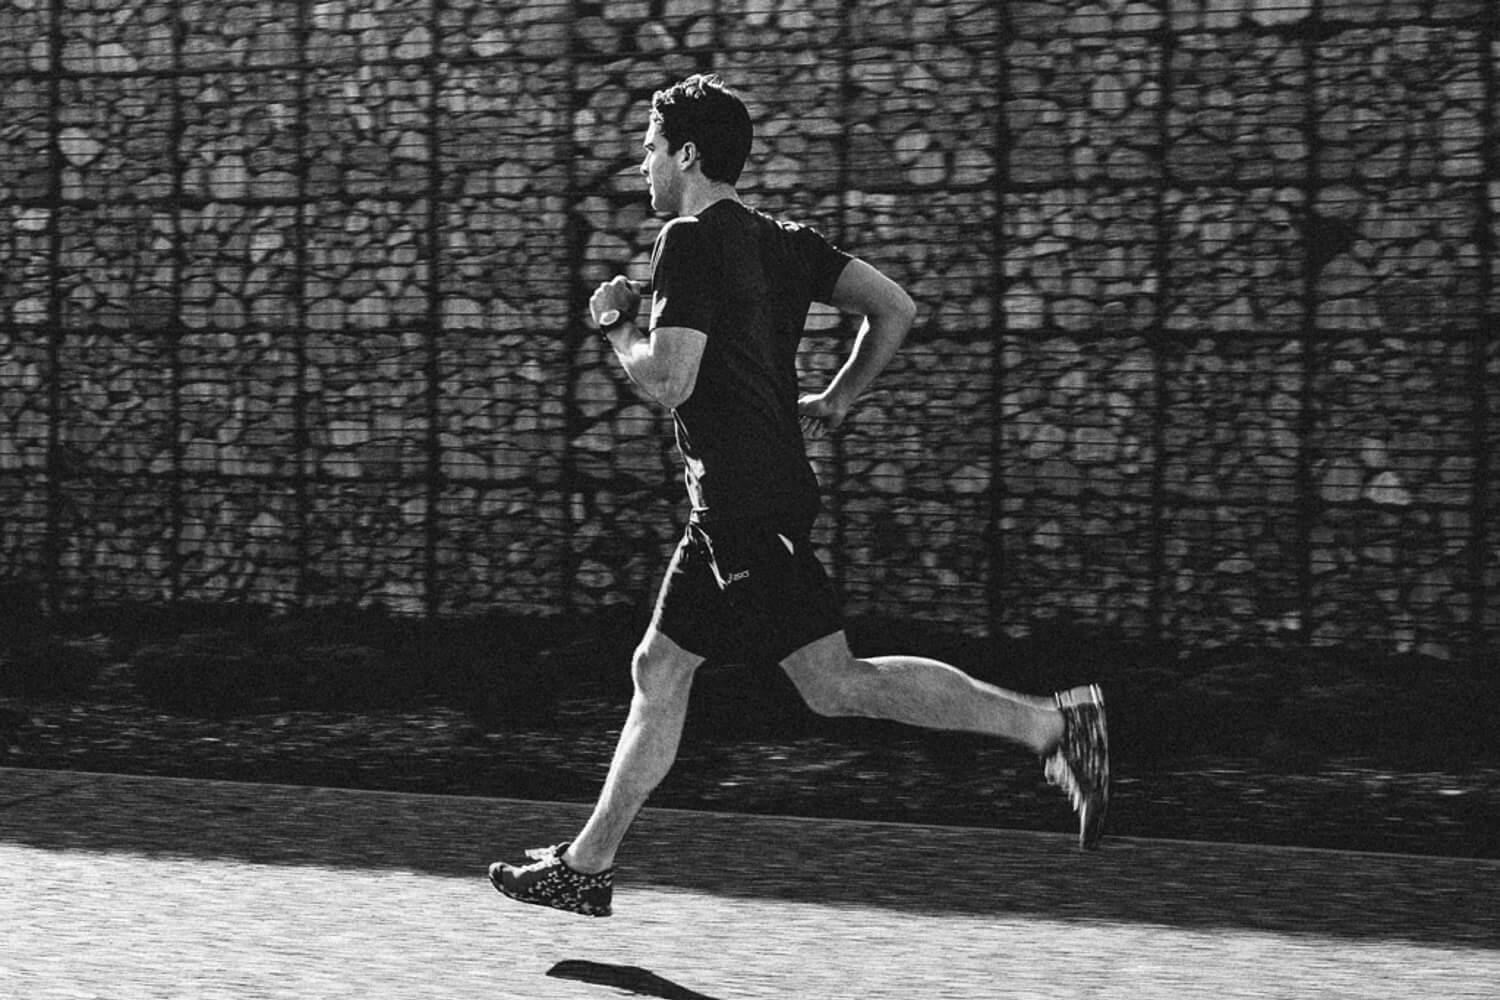 lifestyle photographer Tim Cole shoots runner in motion